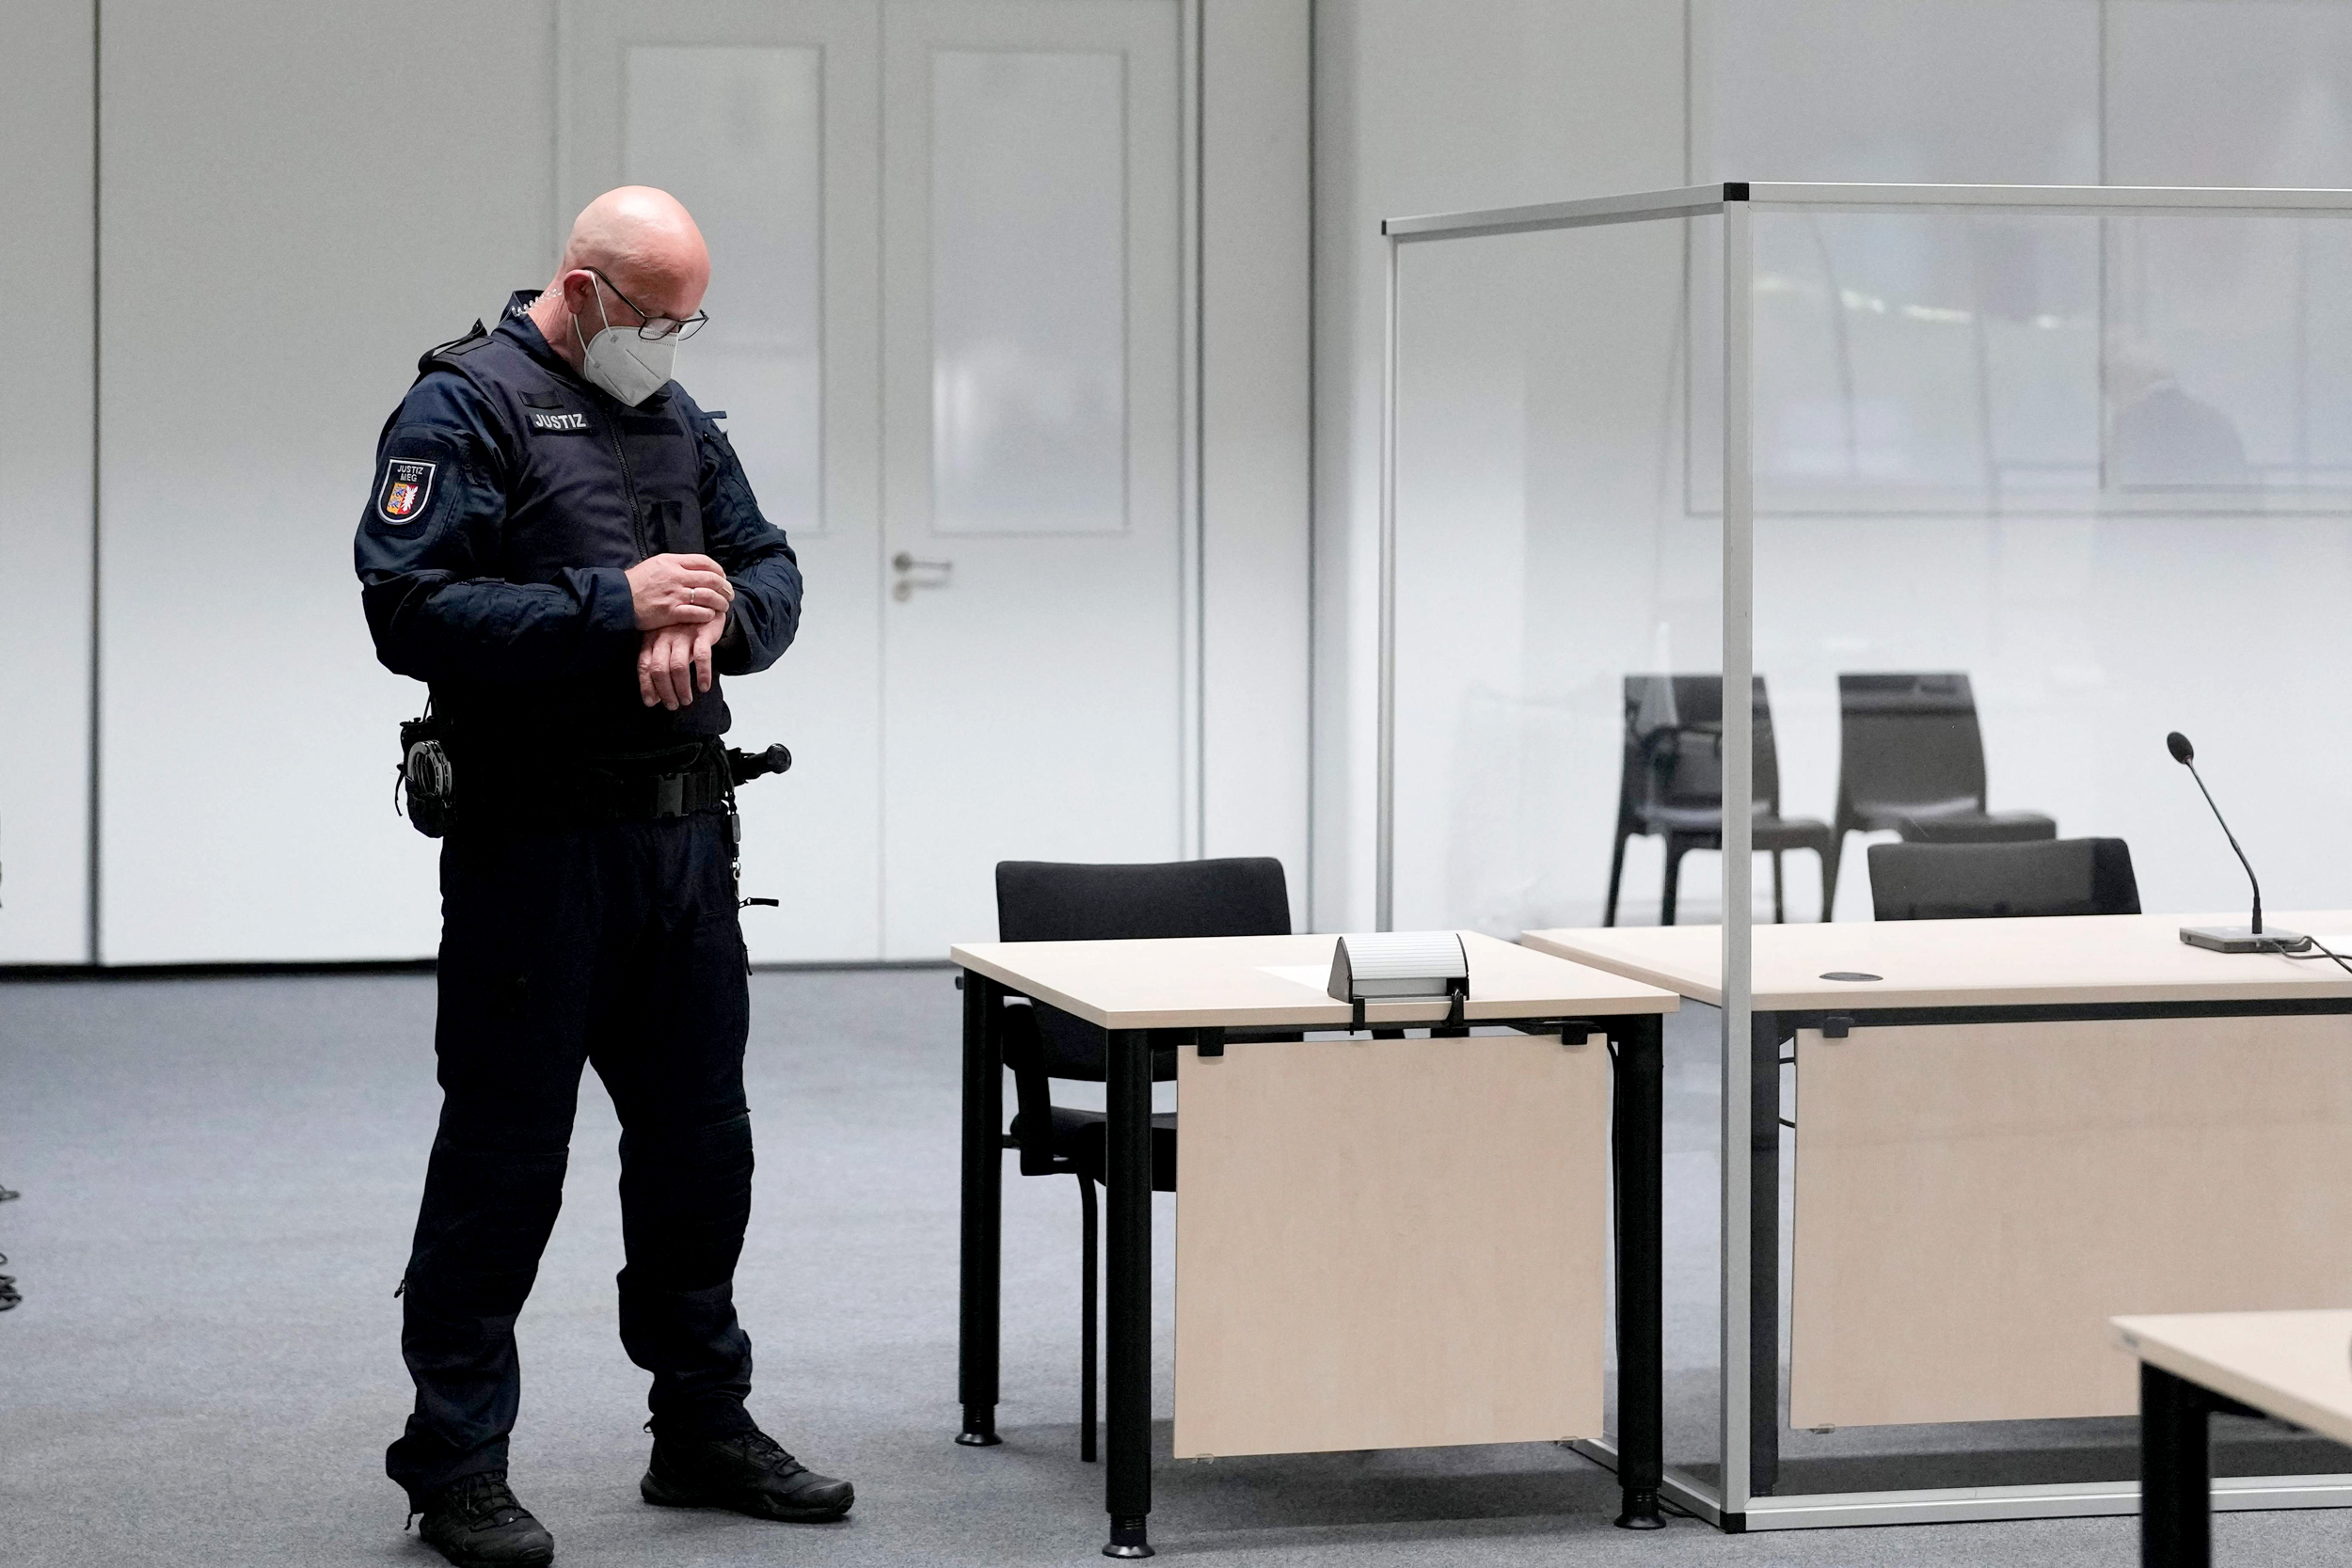 96-year-old woman flees Nazi war crimes trial in taxi, later arrested